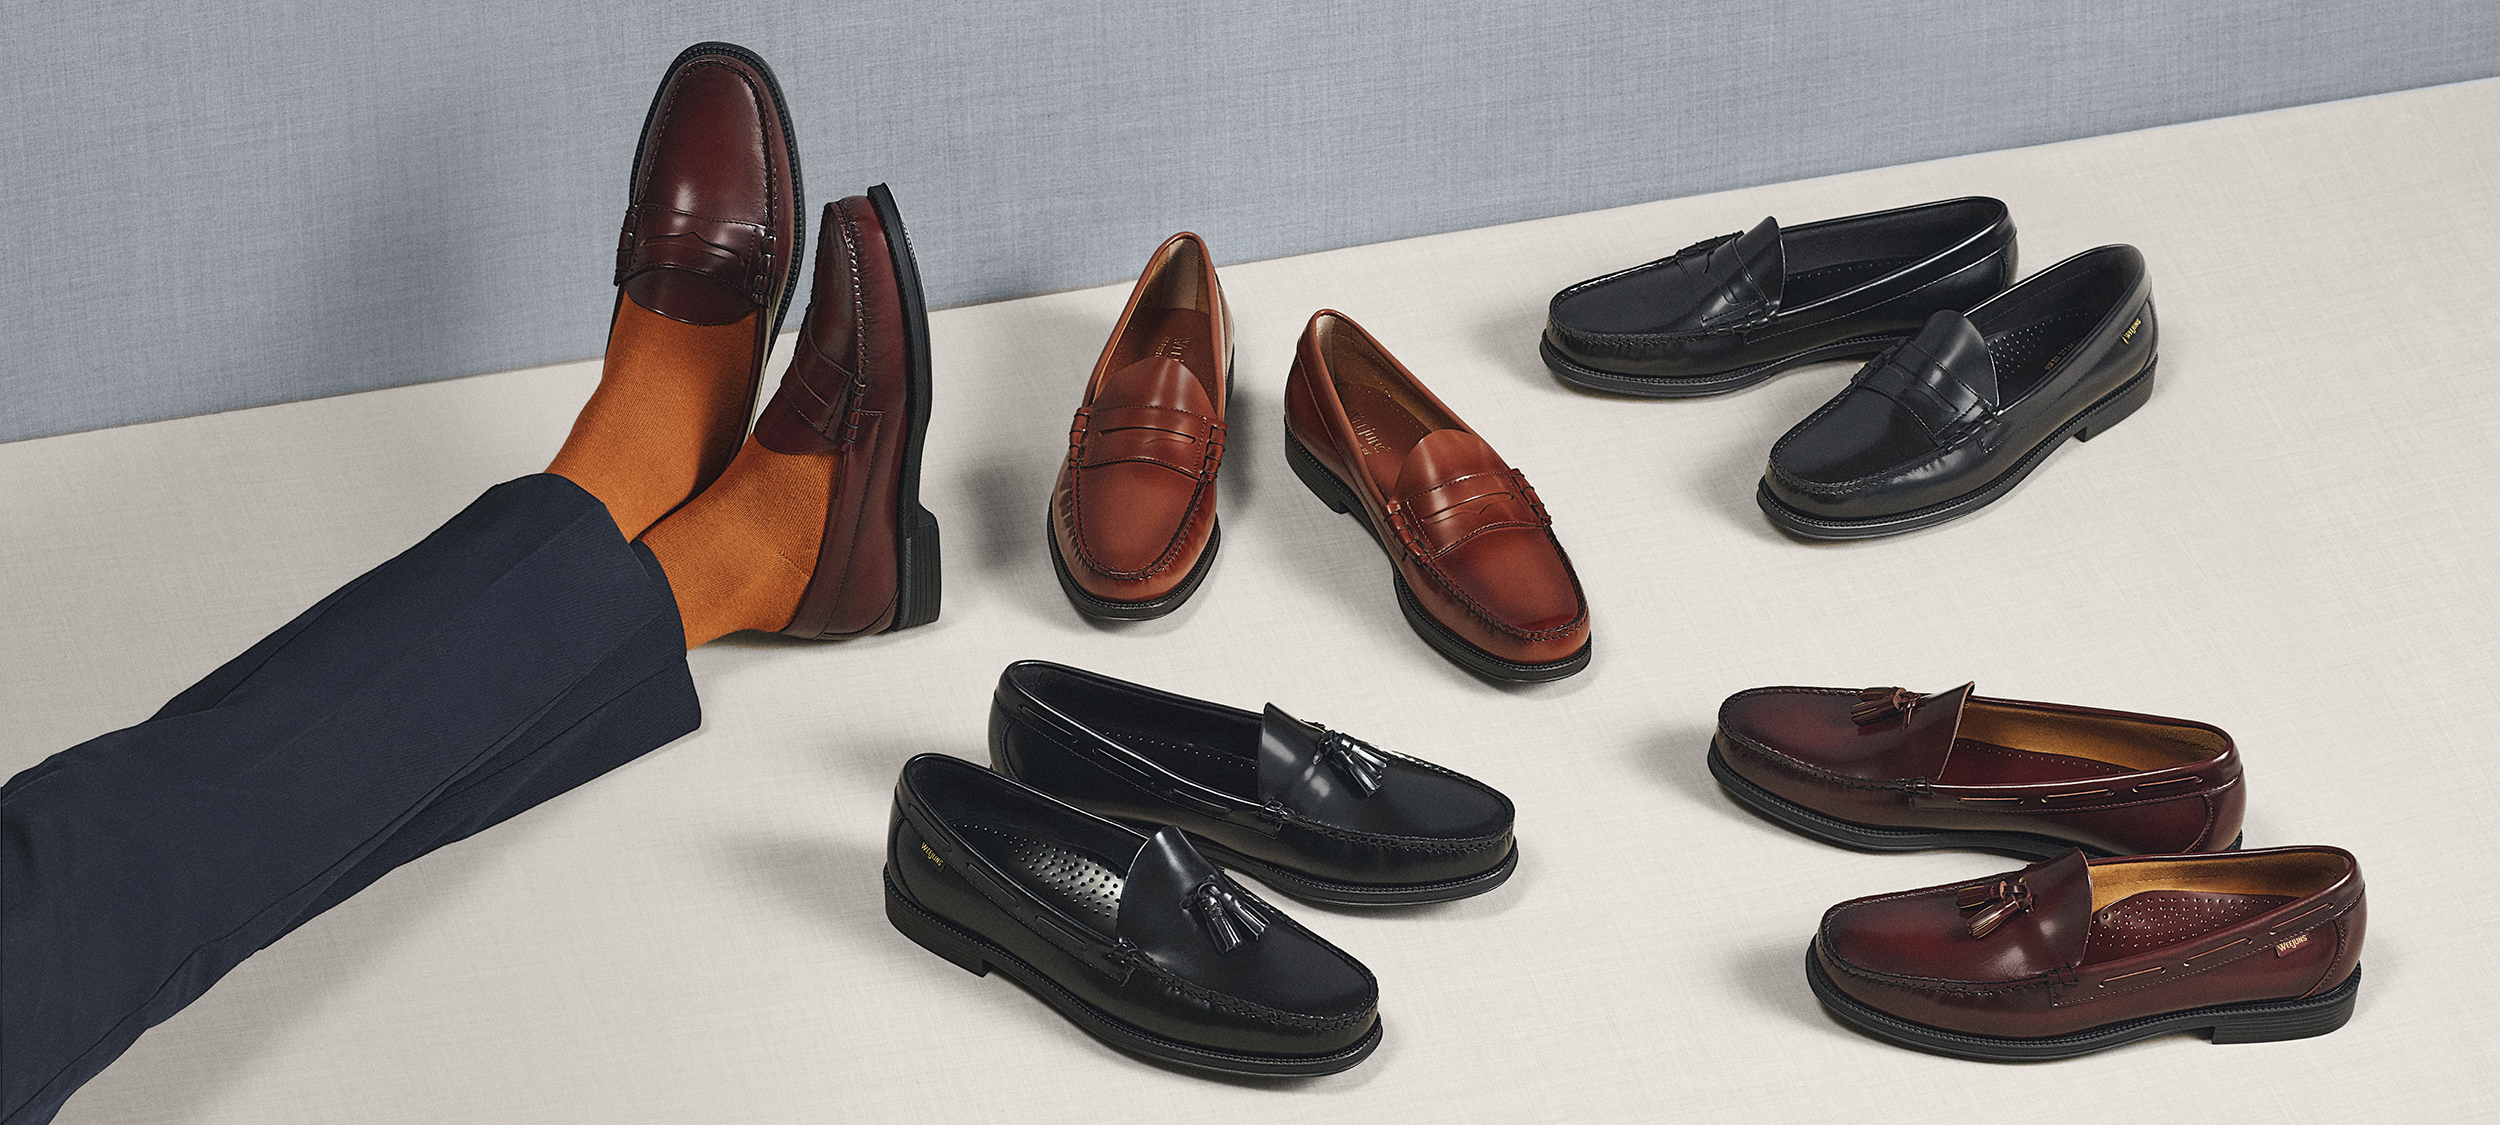 G.H. Bass & Co: Explore men's and women's shoes including loafers, oxfords, boots, …